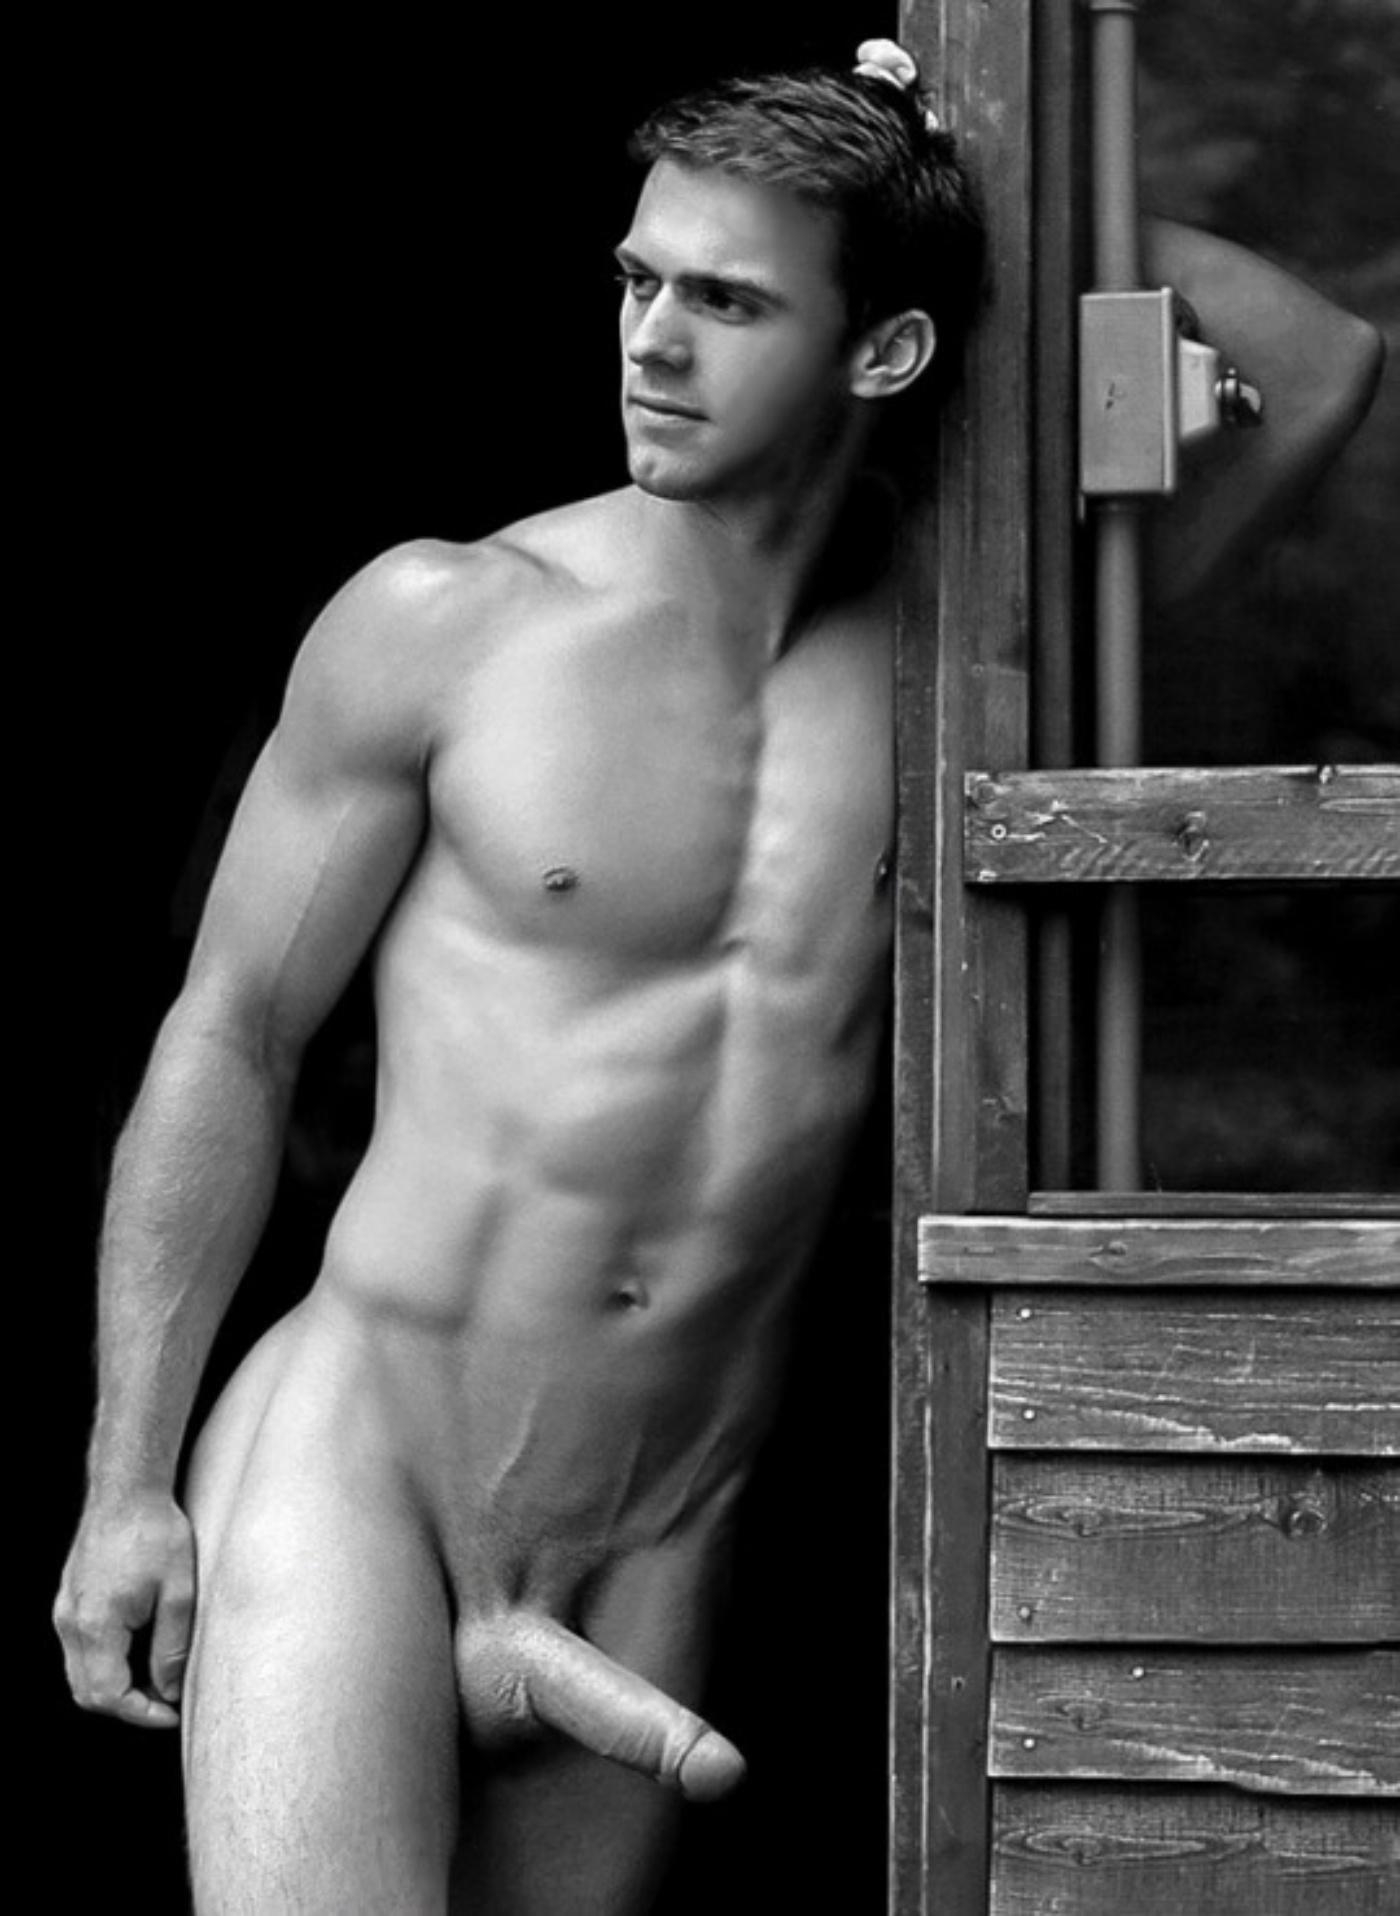 Big images for hot naked espain guys